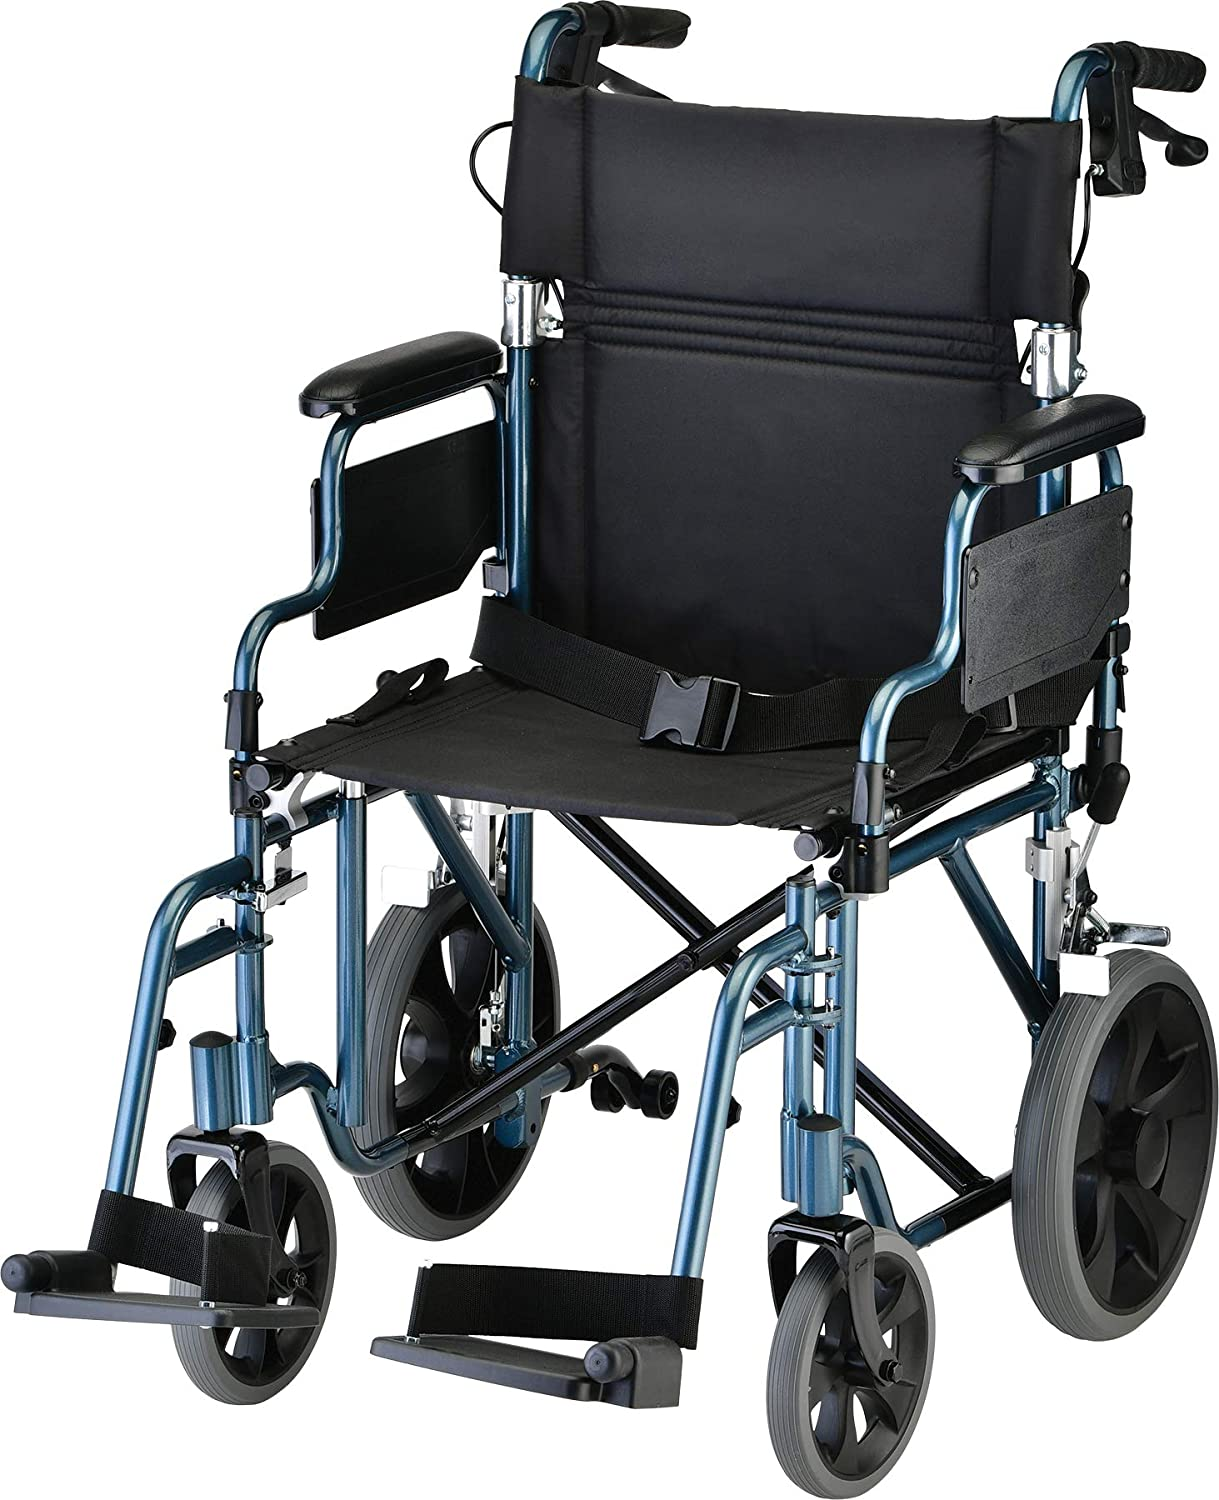 "NOVA Lightweight Transport Chair with Locking Hand Brakes, 12"" Rear Wheels, Removable & Flip Up Arms for Easy Transfer, Anti-Tippers Included, Blue: Health & Personal Care"